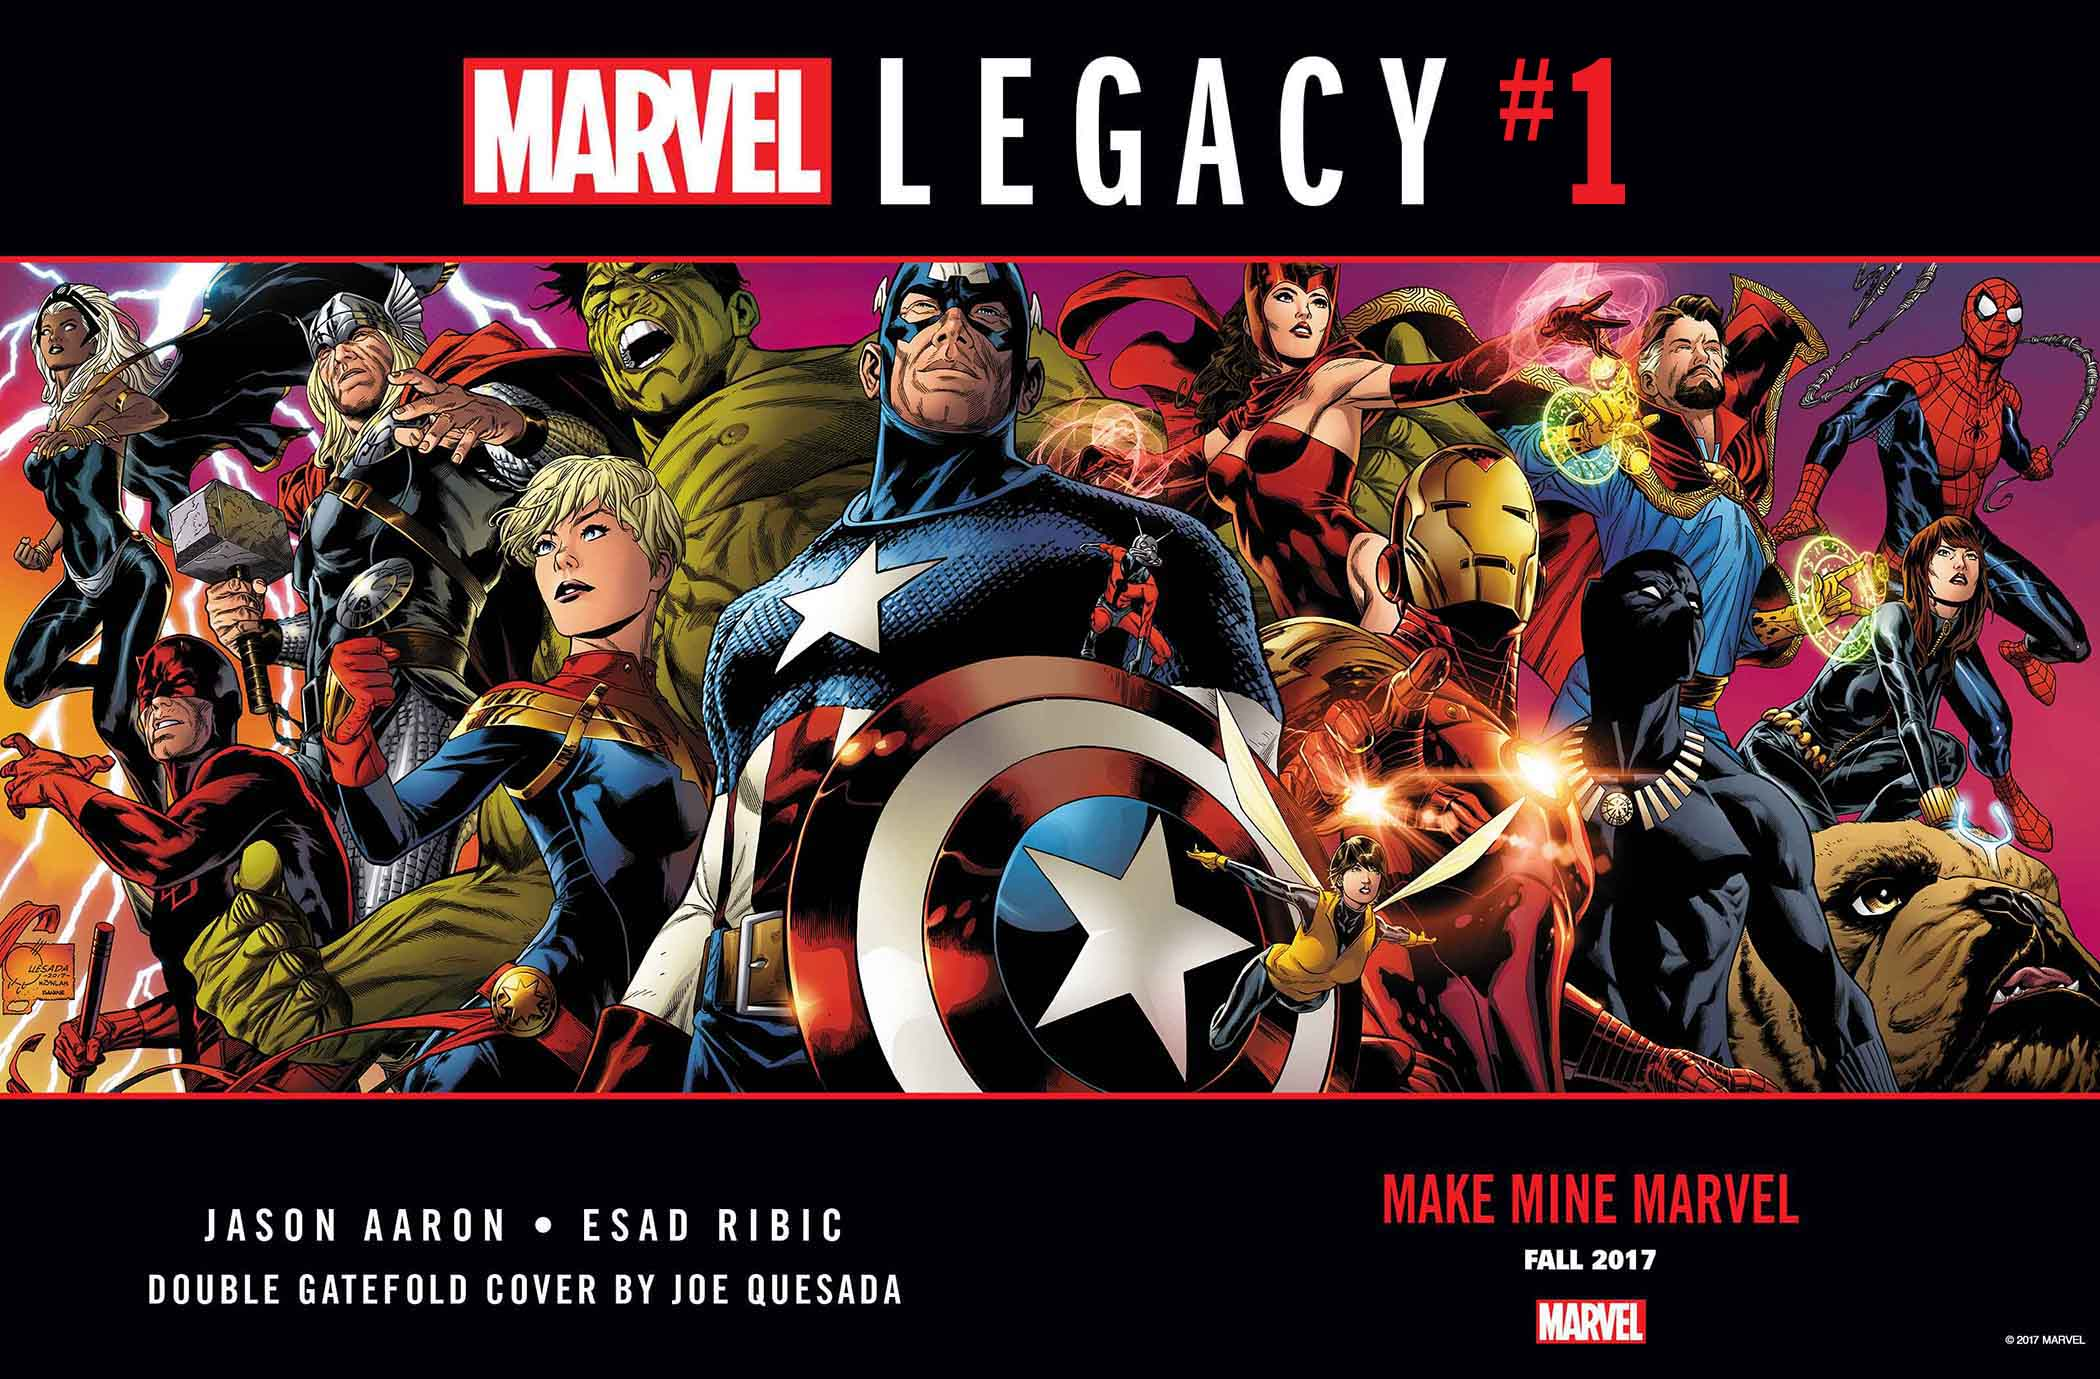 September 2017's top selling comic books: Marvel Legacy is already 2017's best-selling comic